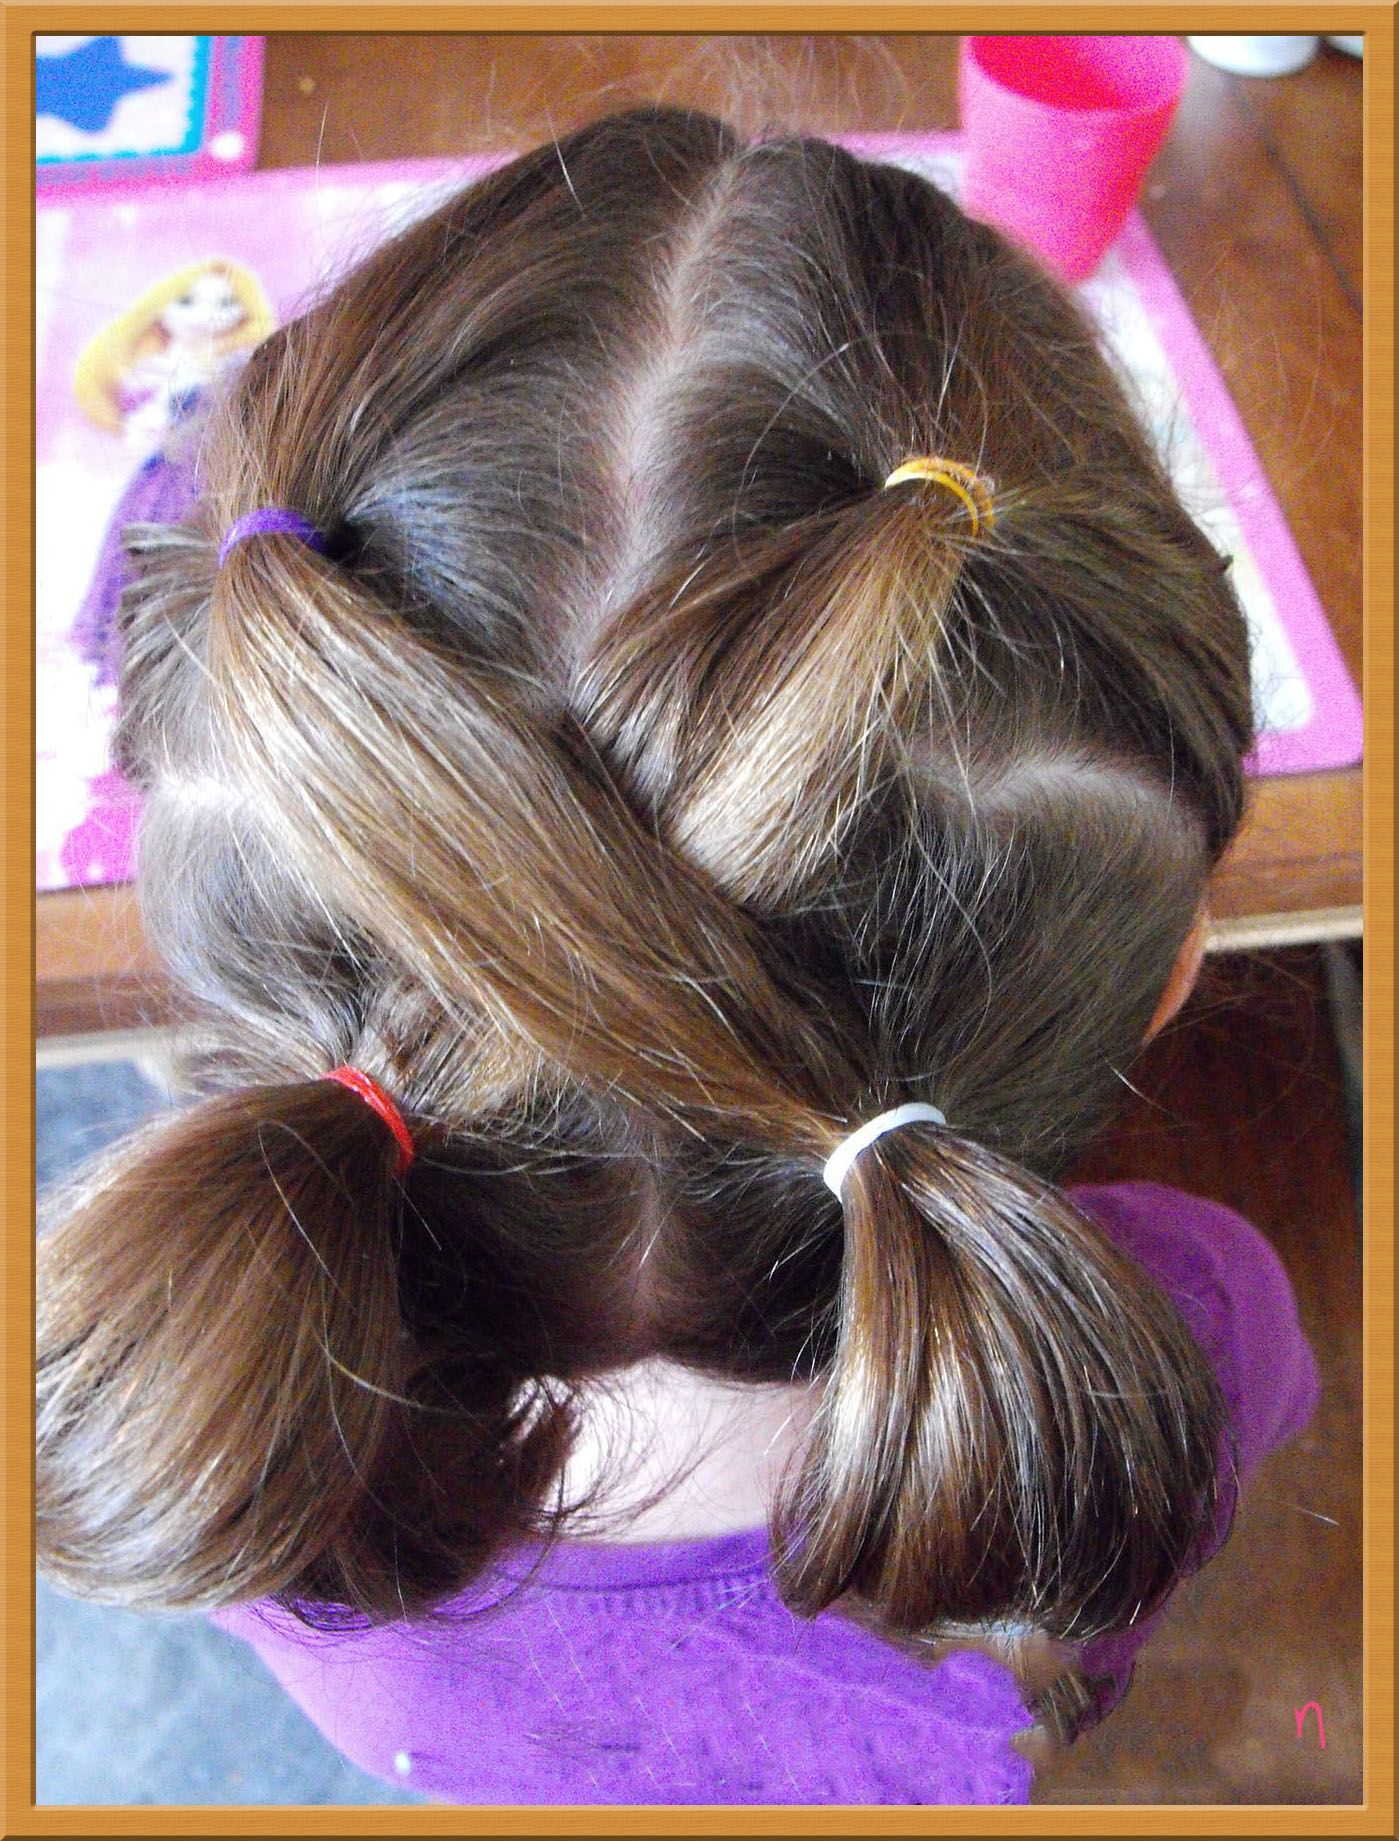 Hair Styles Helps You Achieve Your Dreams – 2021